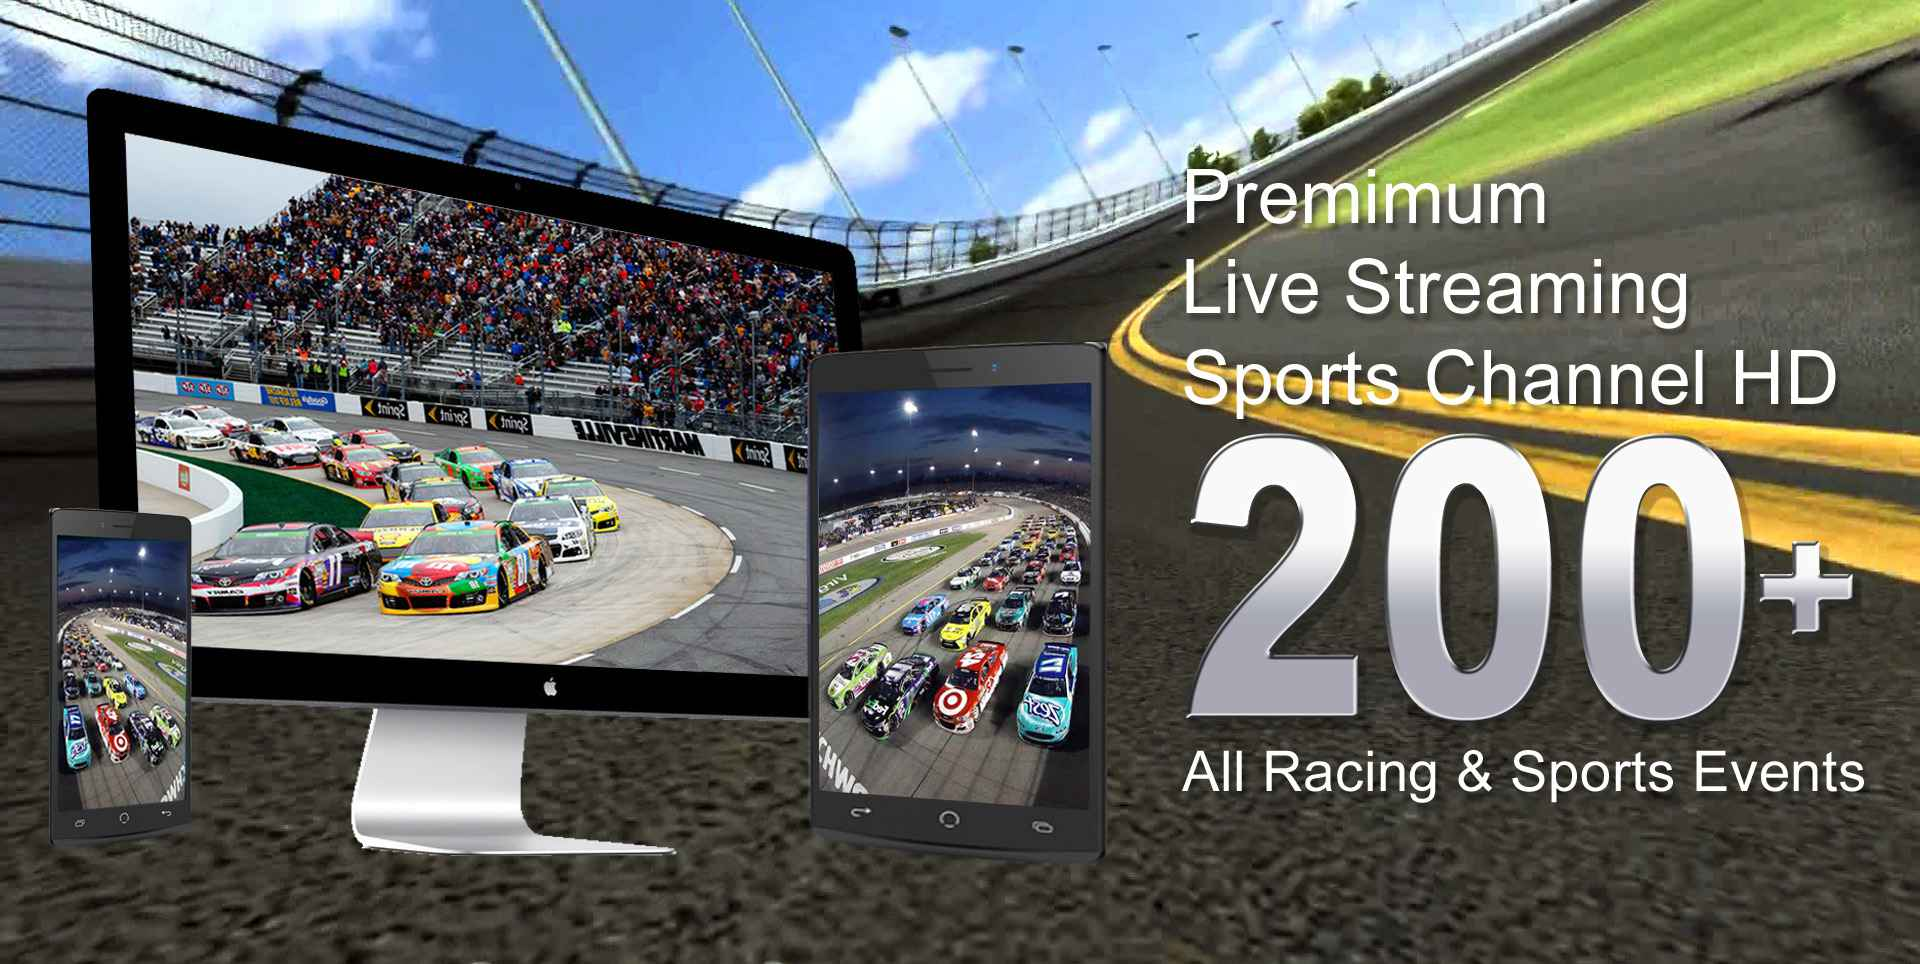 NASCAR Sprint Cup Series at Bristol 2015